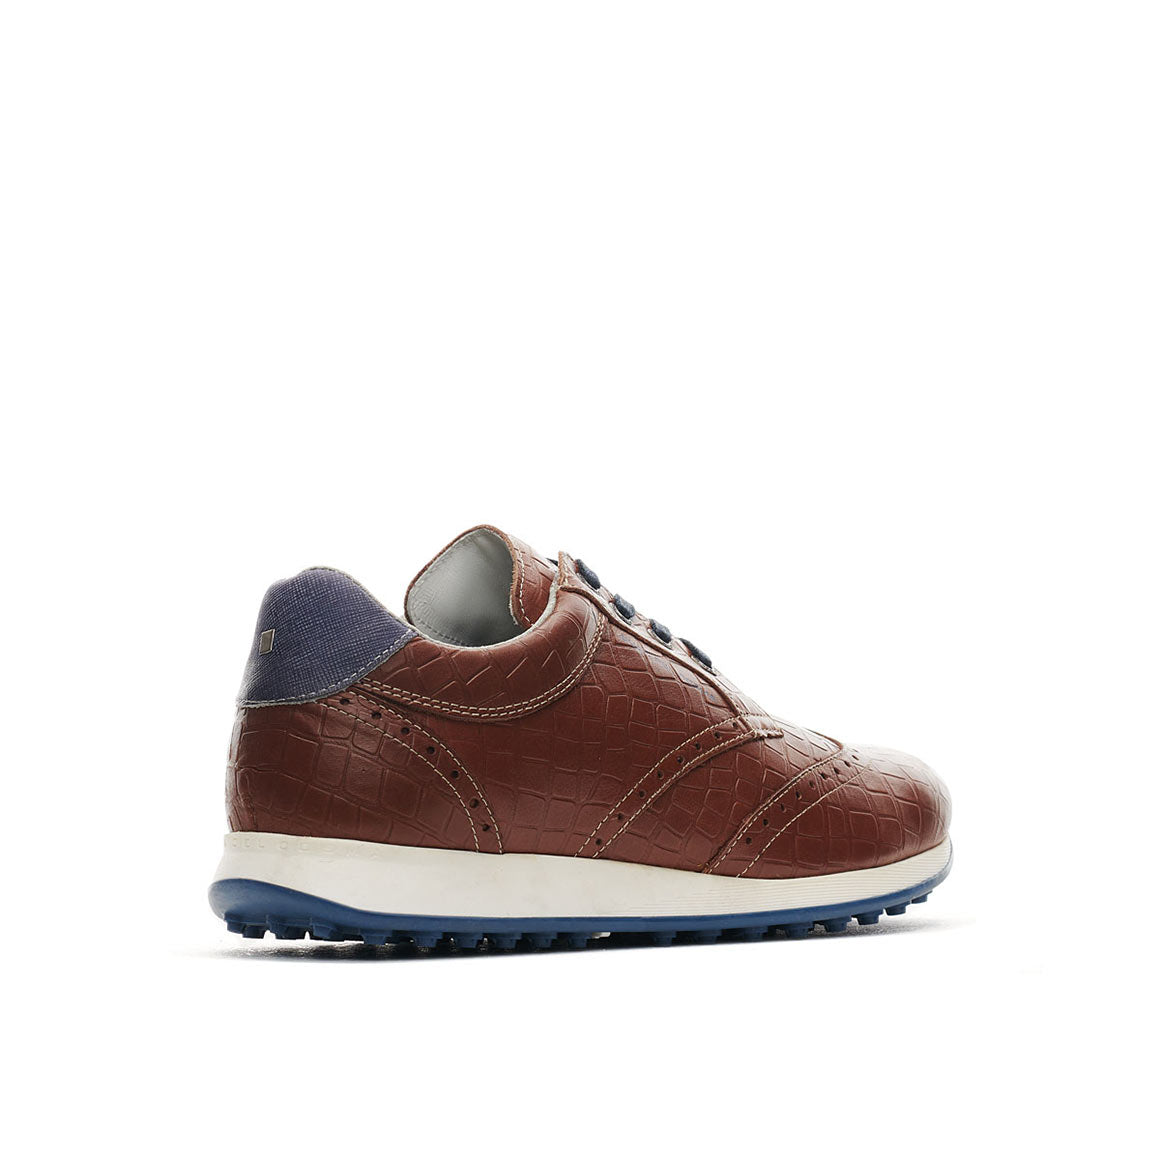 Men's La Spezia II Lion / Croc Golf Shoe